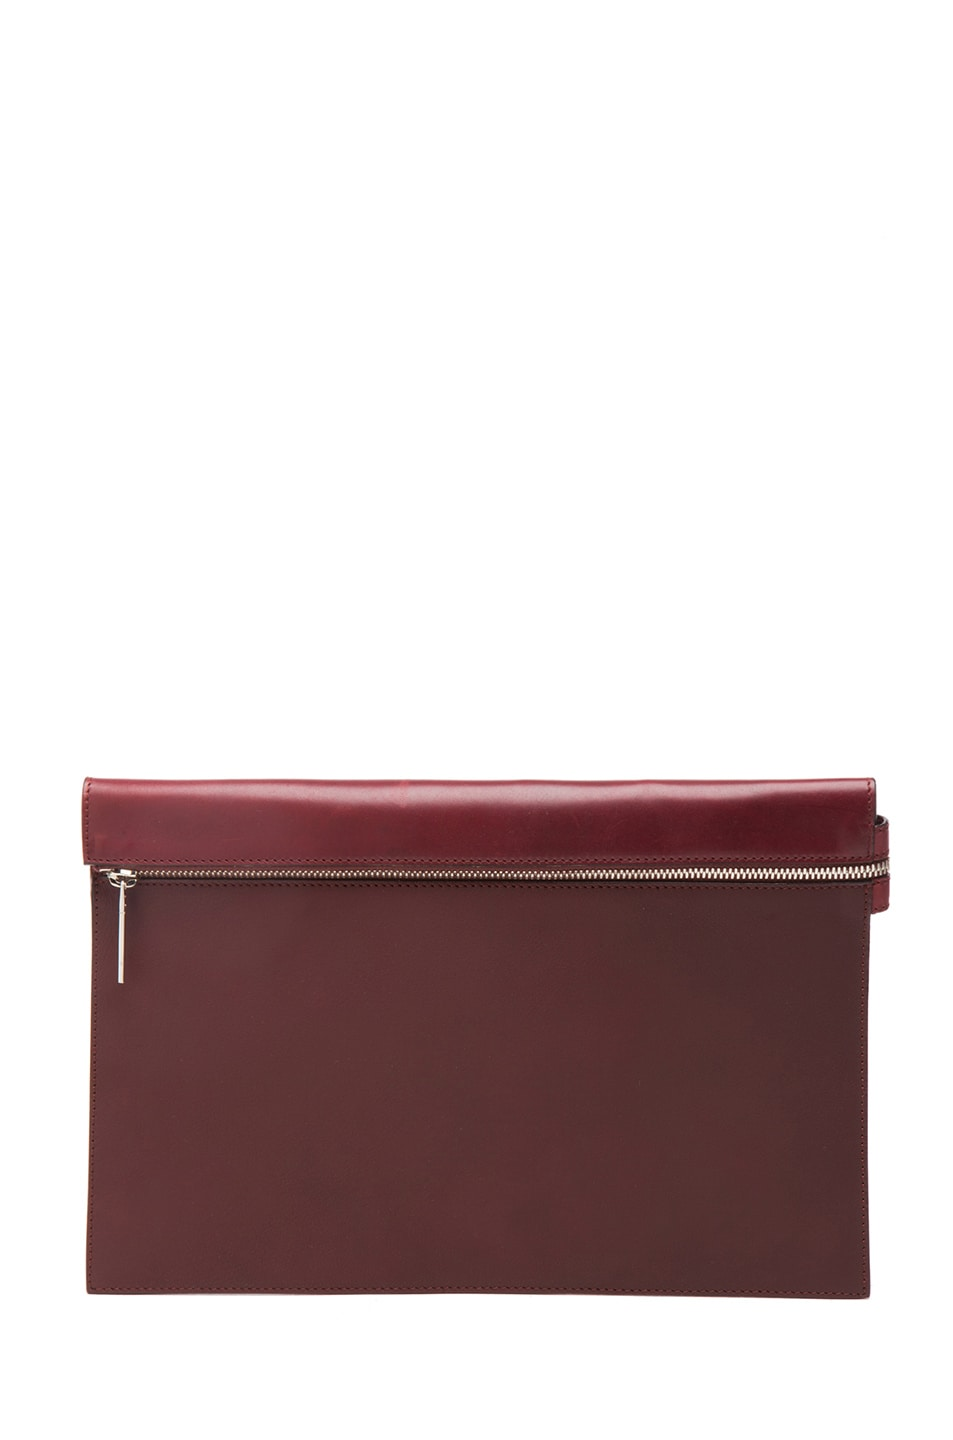 Image 1 of Victoria Beckham Large Zip Pouch in Oxblood